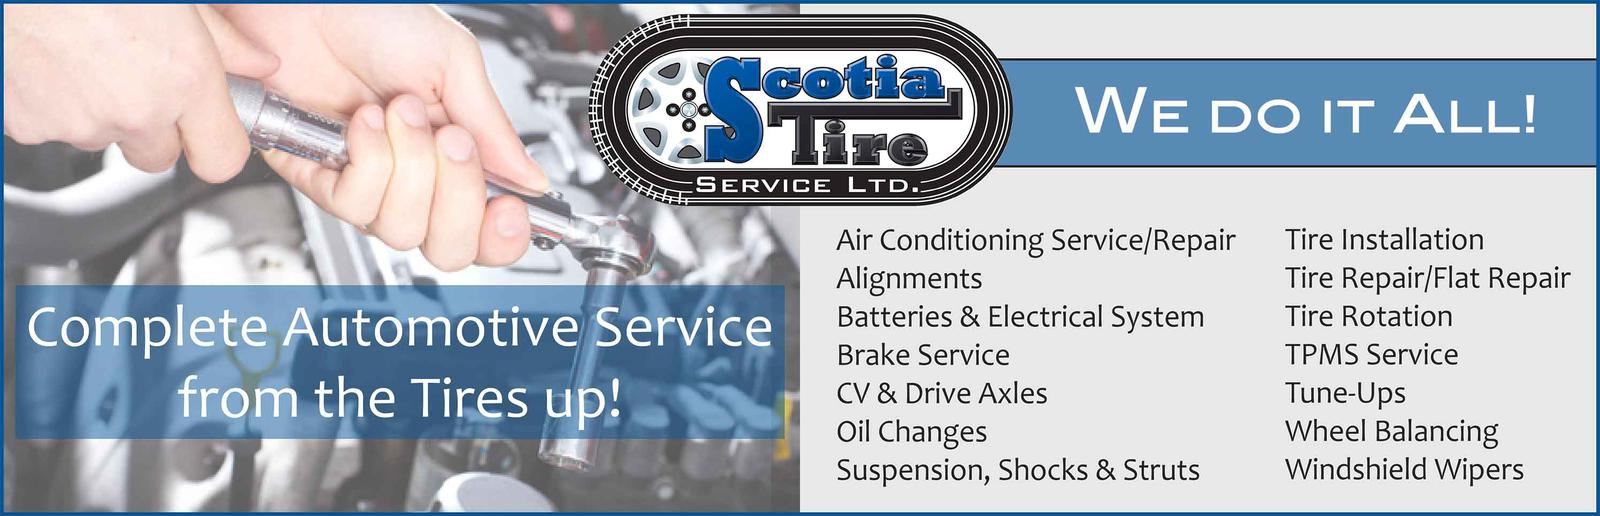 Scotia tire provides premium automotive services and products in 5 complete auto service reheart Image collections